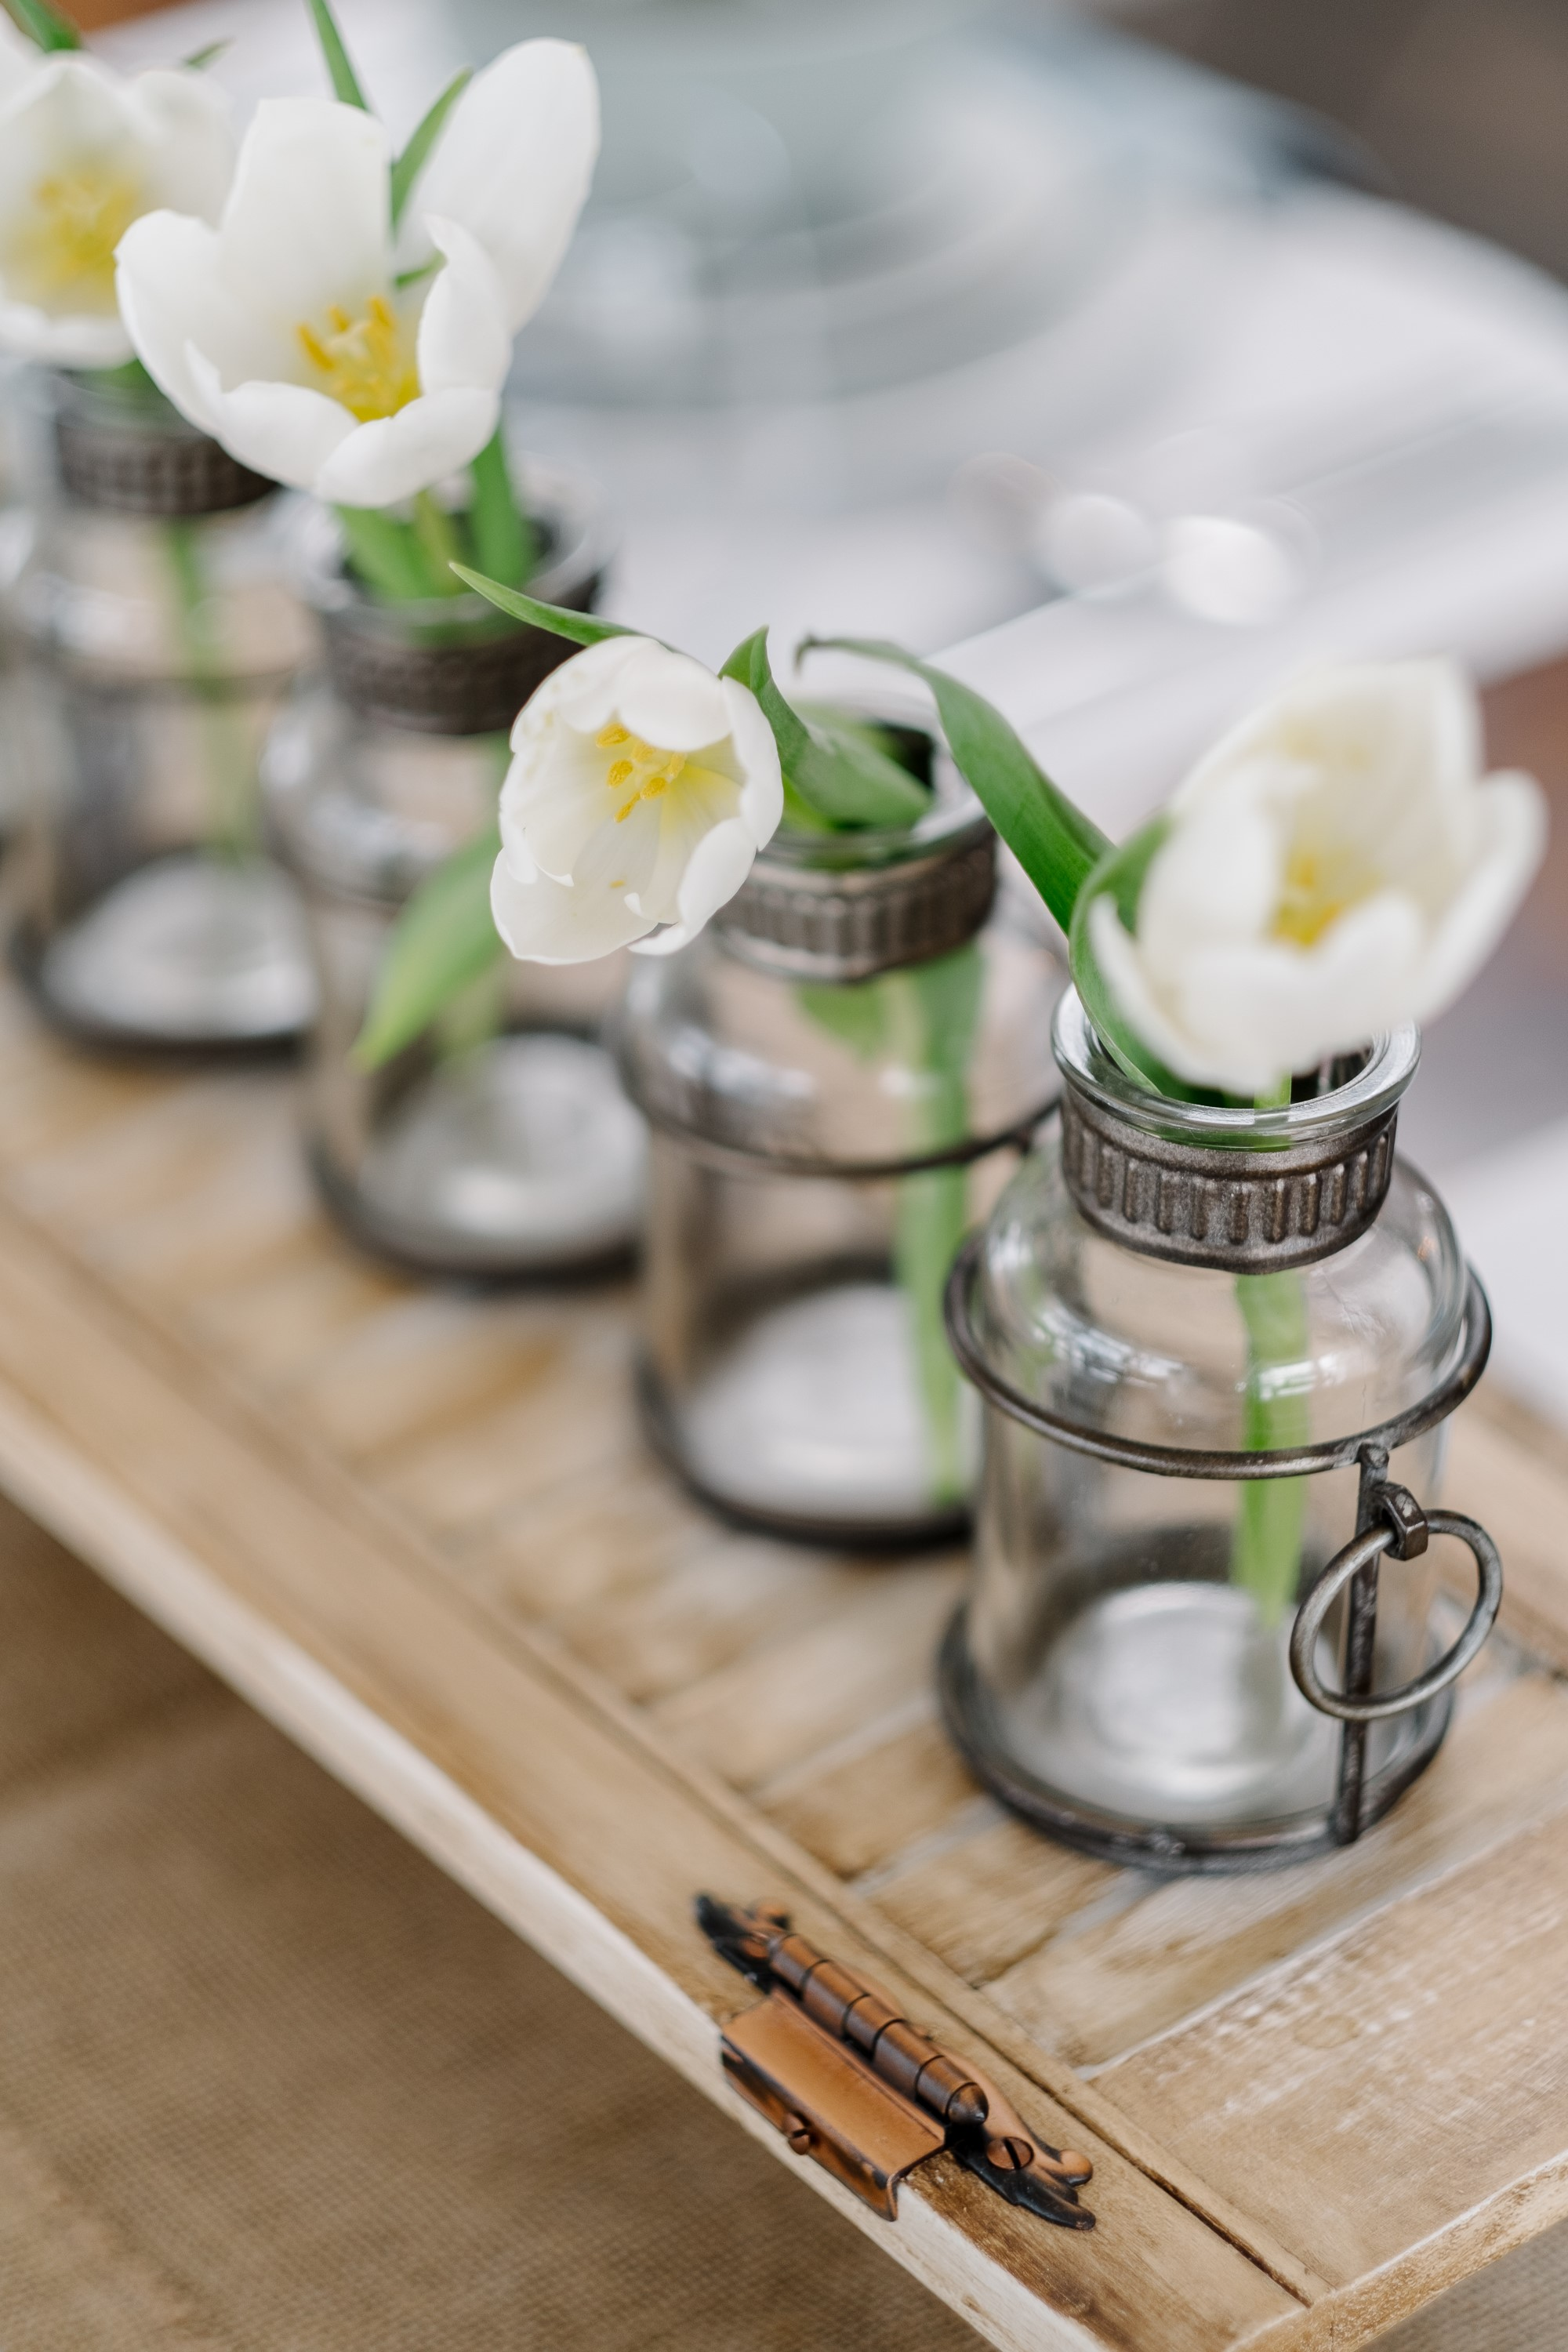 Spring Decorating Ideas with Florals